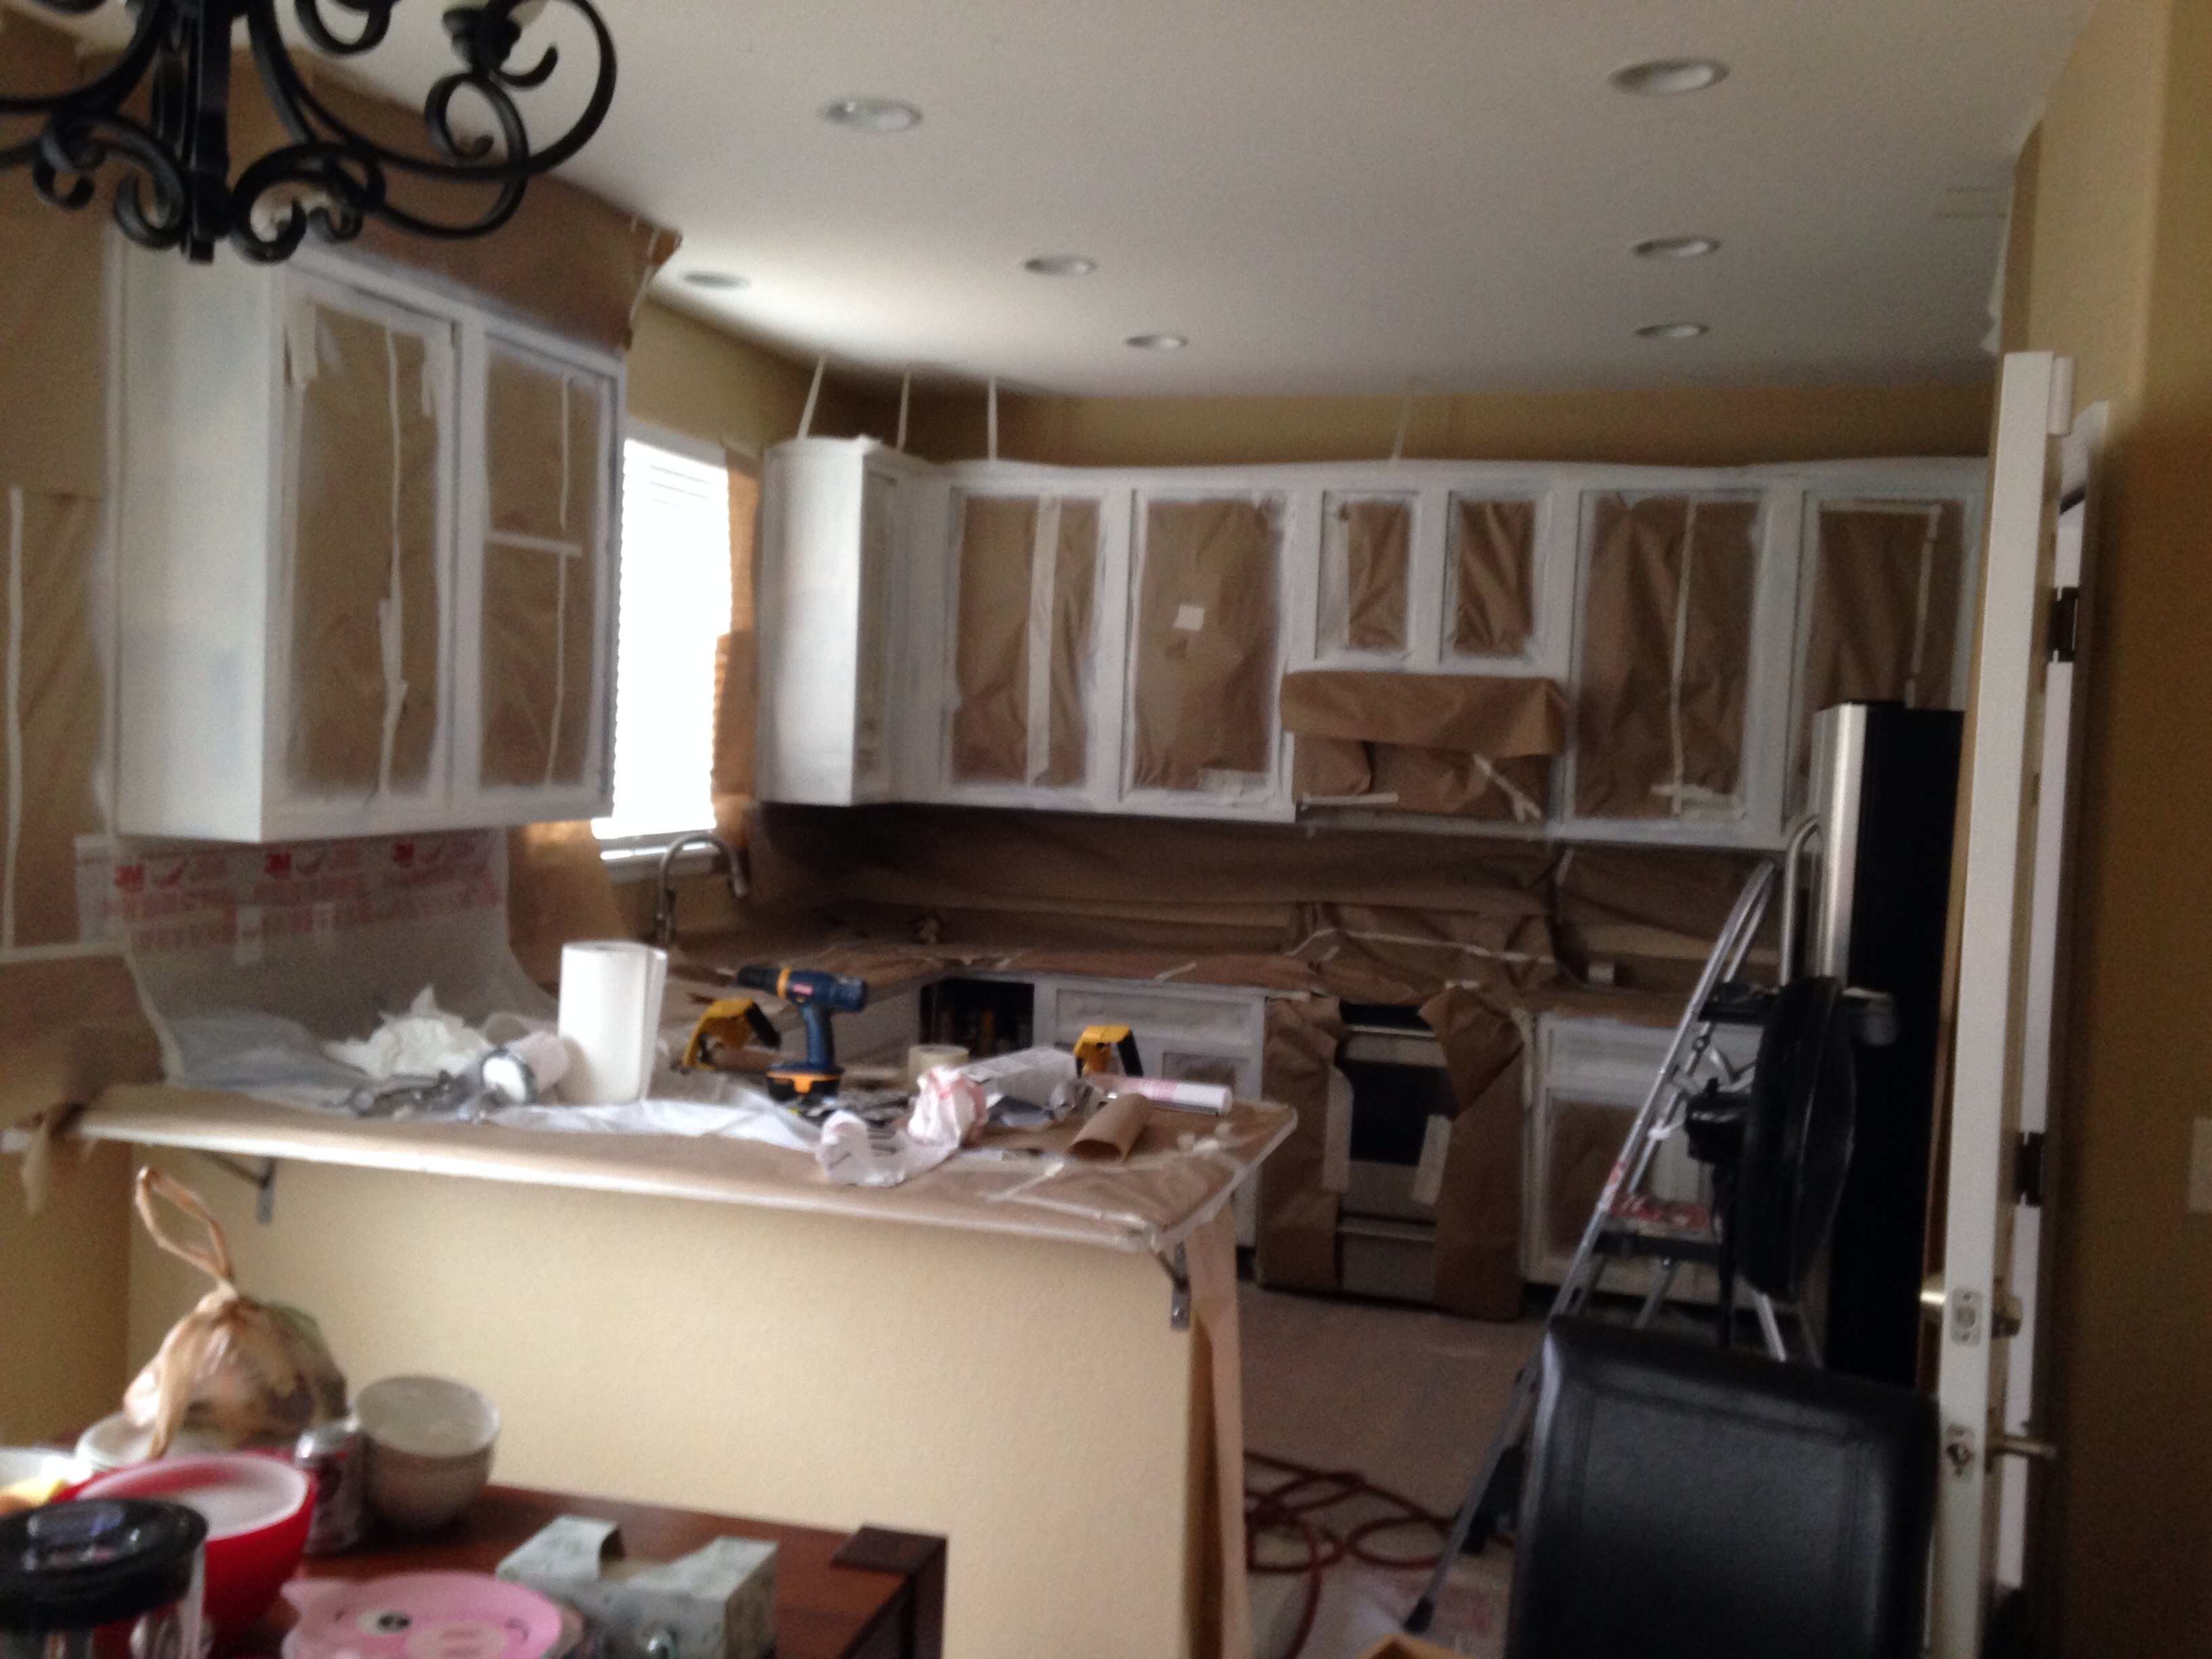 Denver Kitchen Cabinets kitchen cabinets lowes Painting Kitchen Cabinets Denver